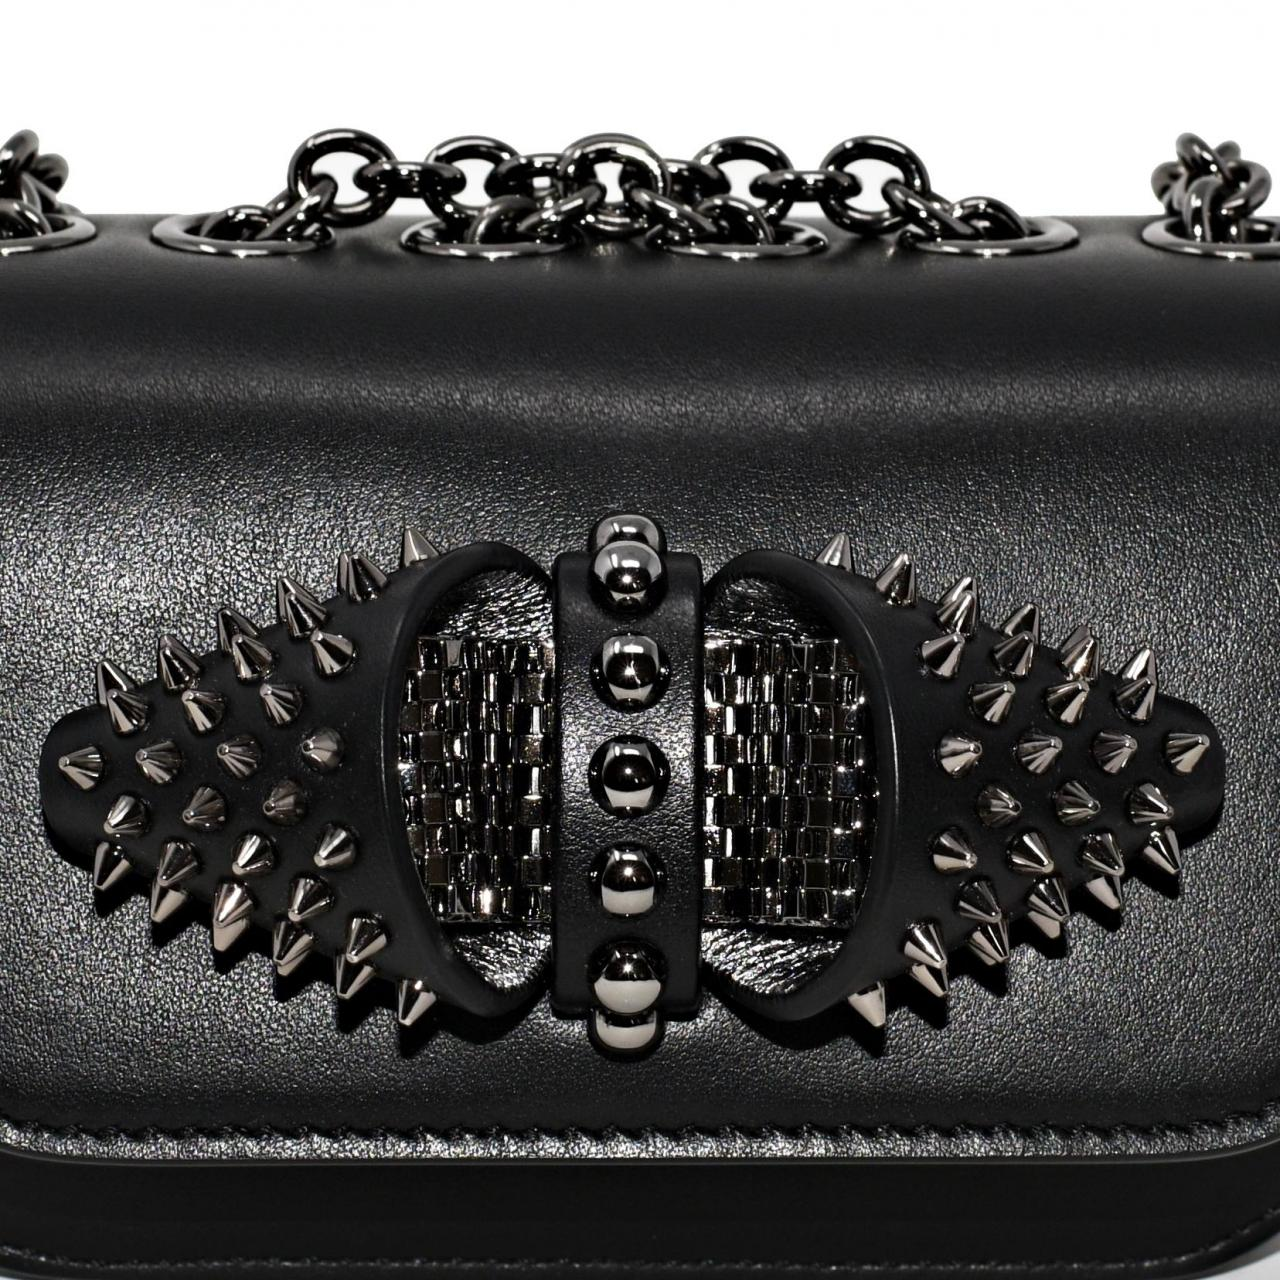 056b2280e37 Online Safe Replica Bags Christian Louboutin Sweet Charity Baby Spiked  Chain Black Calfskin Leather Cross Body Bag